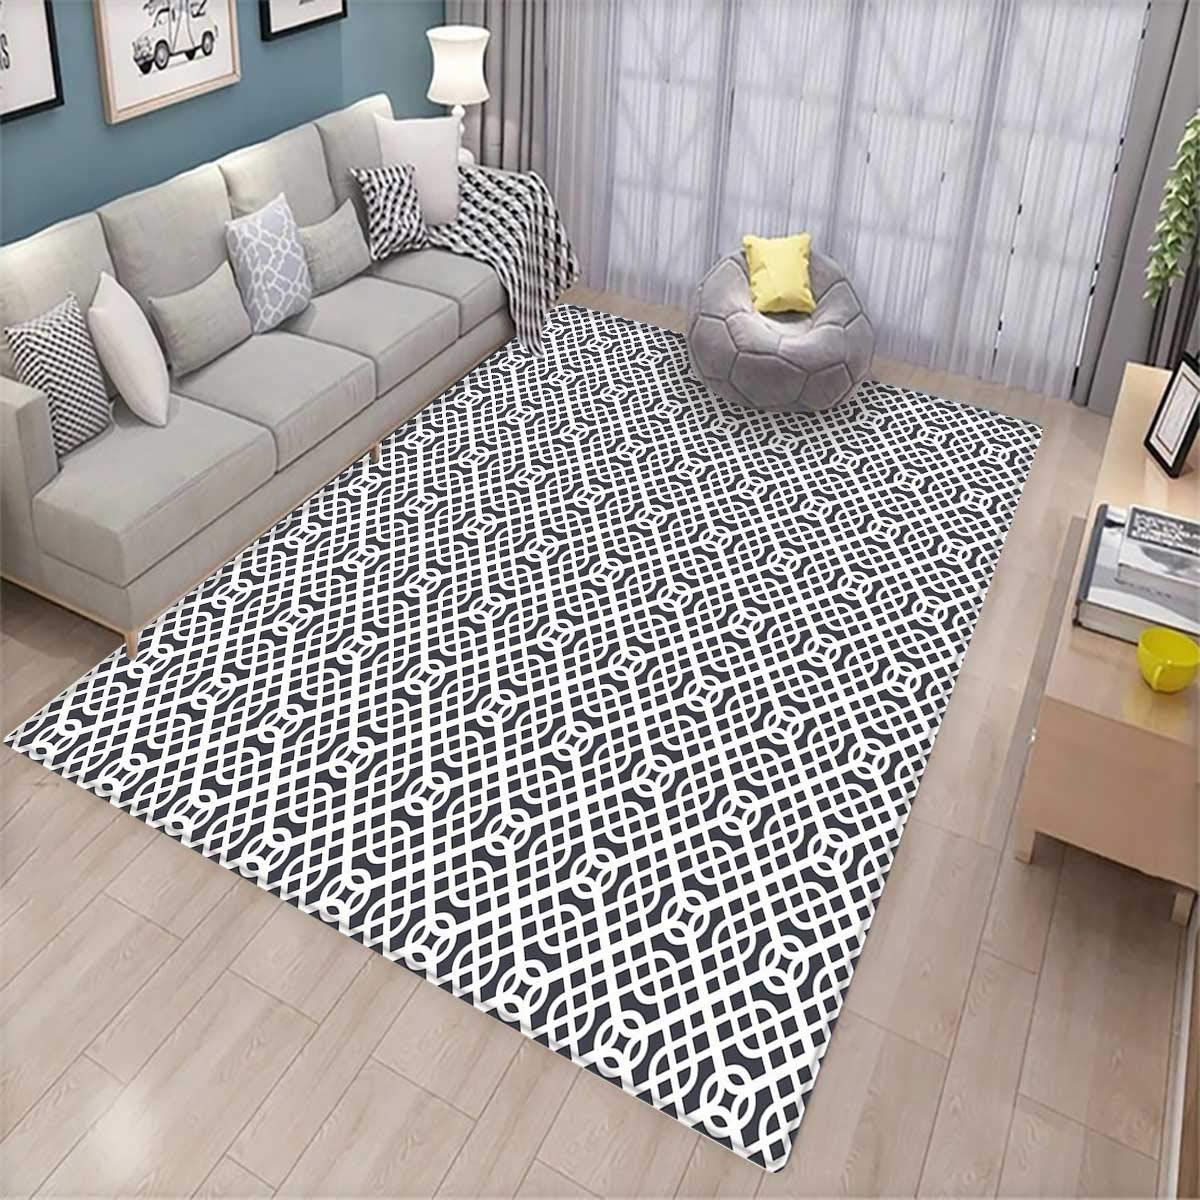 Geometric Extra Large Area Rug Curved Diagonal Lines with Complex Monochrome Design Vintage Inspiration Bath Mat for tub Charcoal Grey White